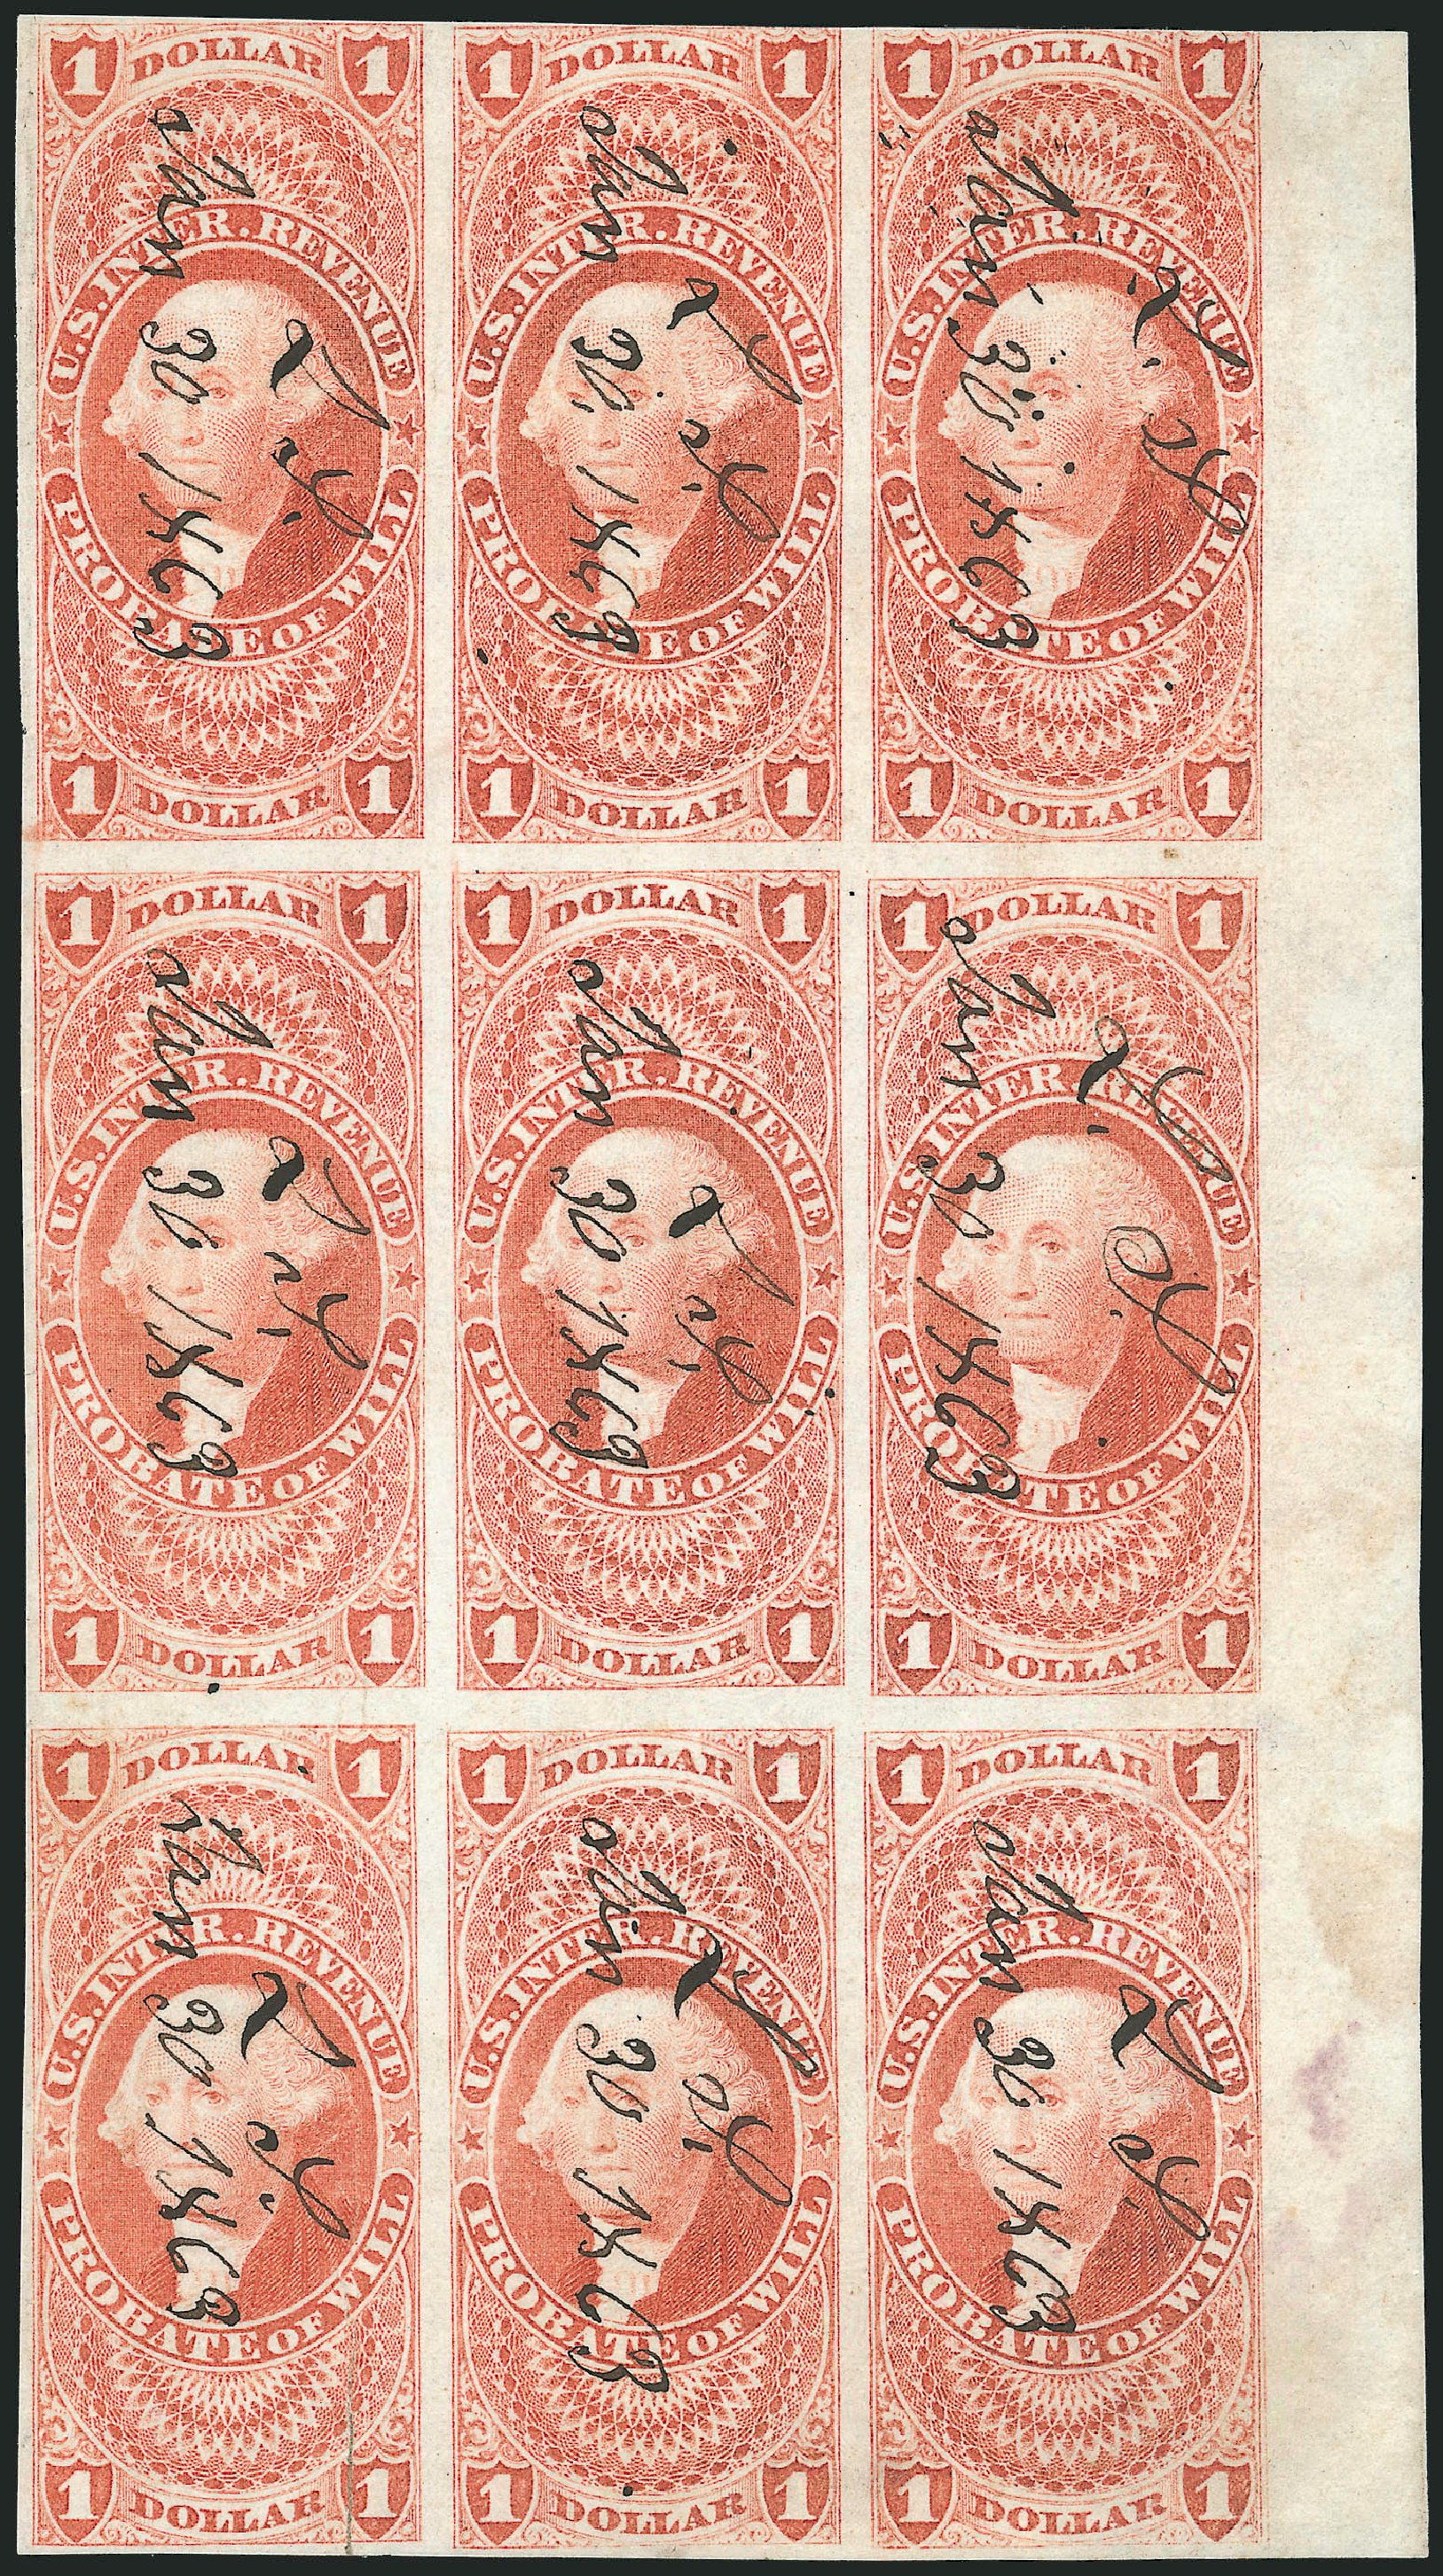 Prices of US Stamps Scott Catalog # R76 - 1862 US$1.00 Revenue Probate of Will. Robert Siegel Auction Galleries, Dec 2014, Sale 1089, Lot 360